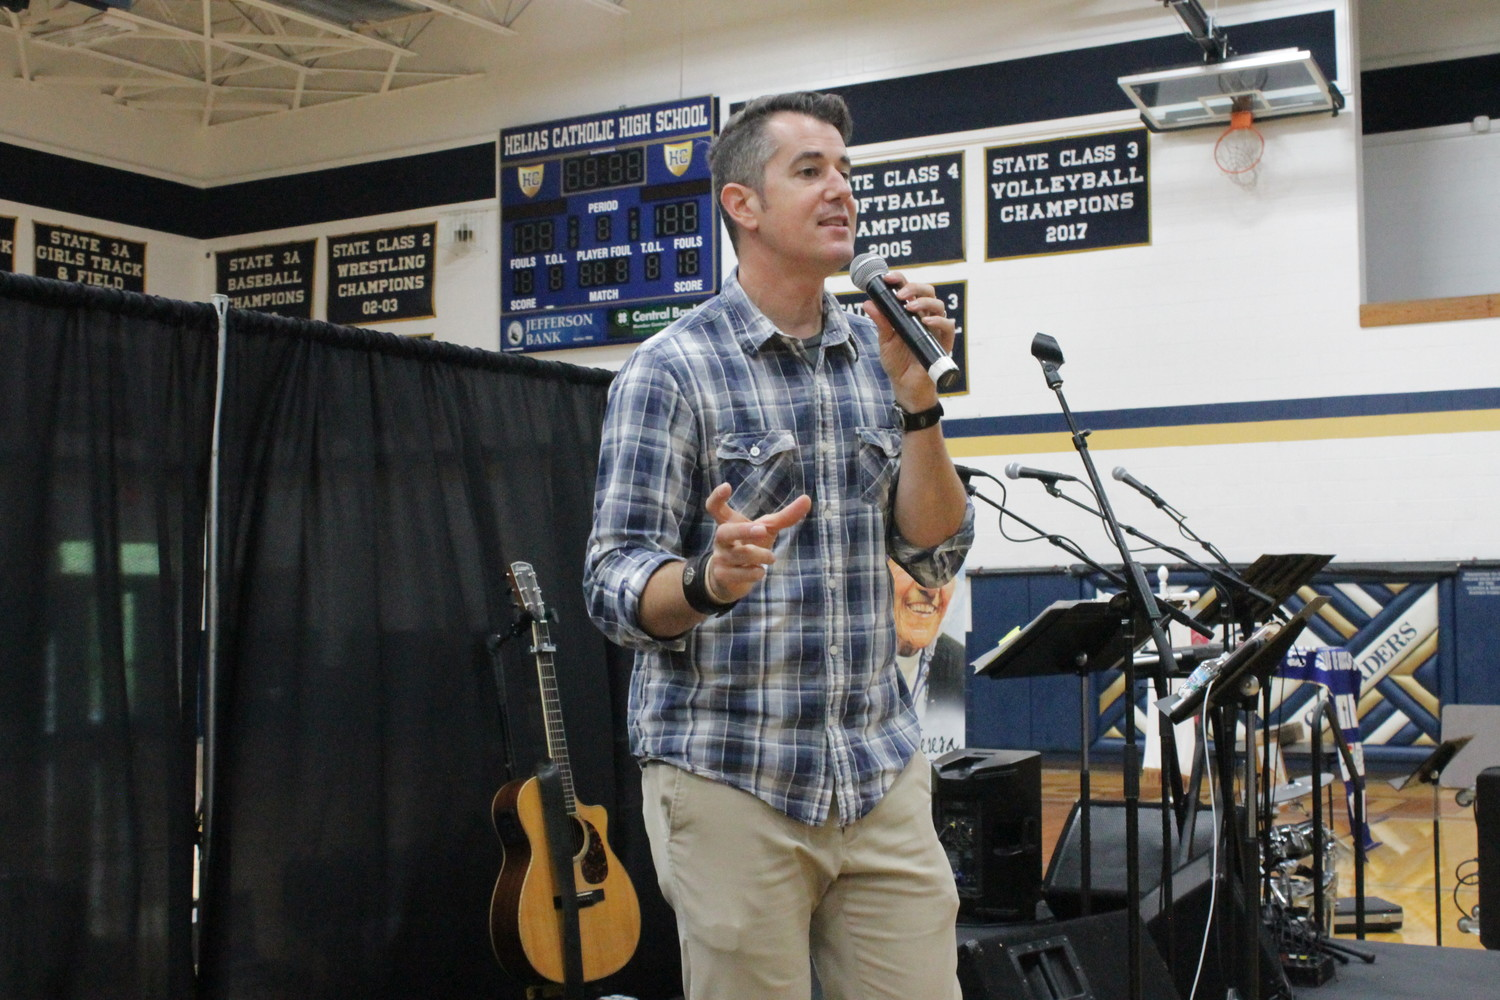 Cooper Ray urges high school teens from the diocese to start out simple and keep moving forward in building up their relationship with Christ.